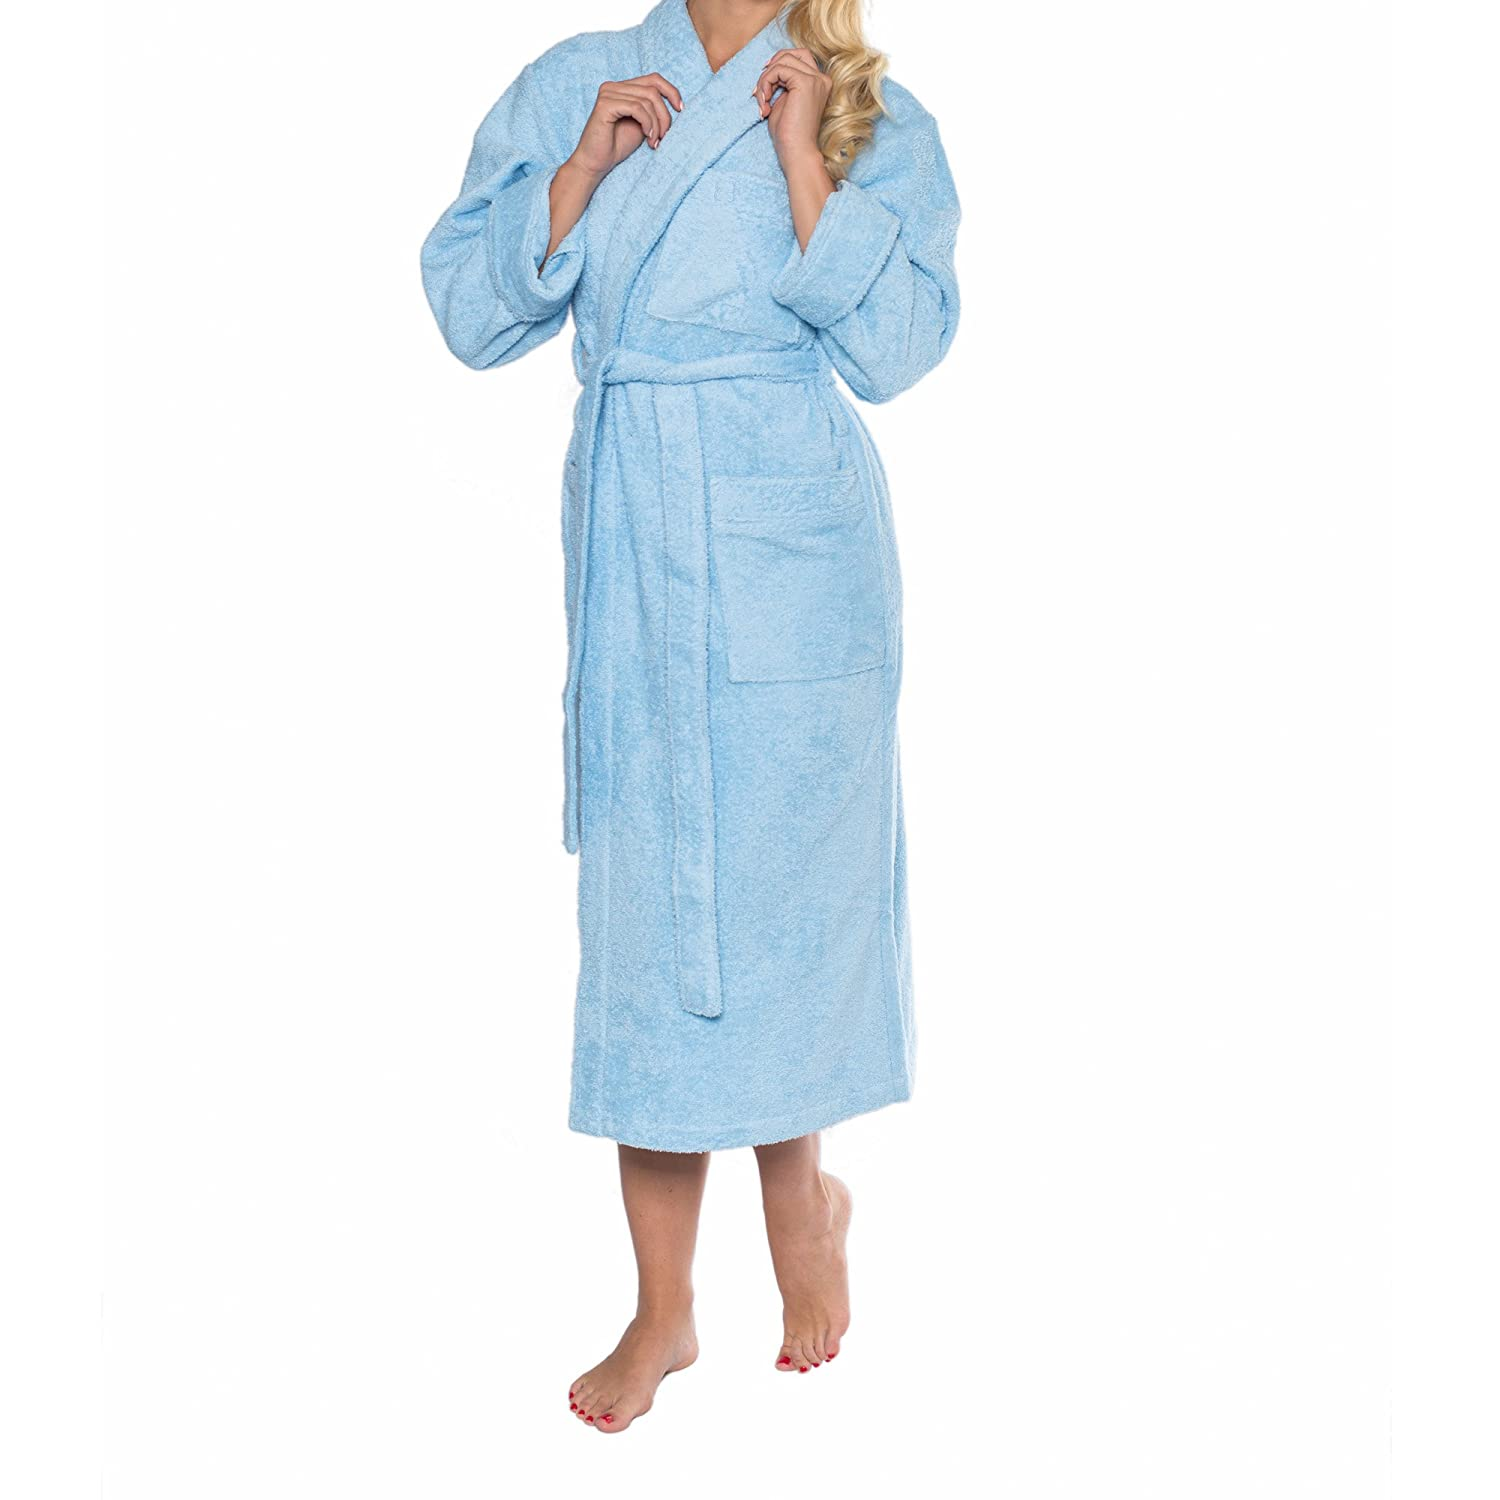 Sophie Bernard AUDREY exclusive Bathrobe from the Collection Bath & Spa. 100% pure Cotton, 430 gf/sqm. Feel at ease! S-Size/light blue LuBo Versandhandel GmbH SB-TA-BAD-AUDREY-S-HB